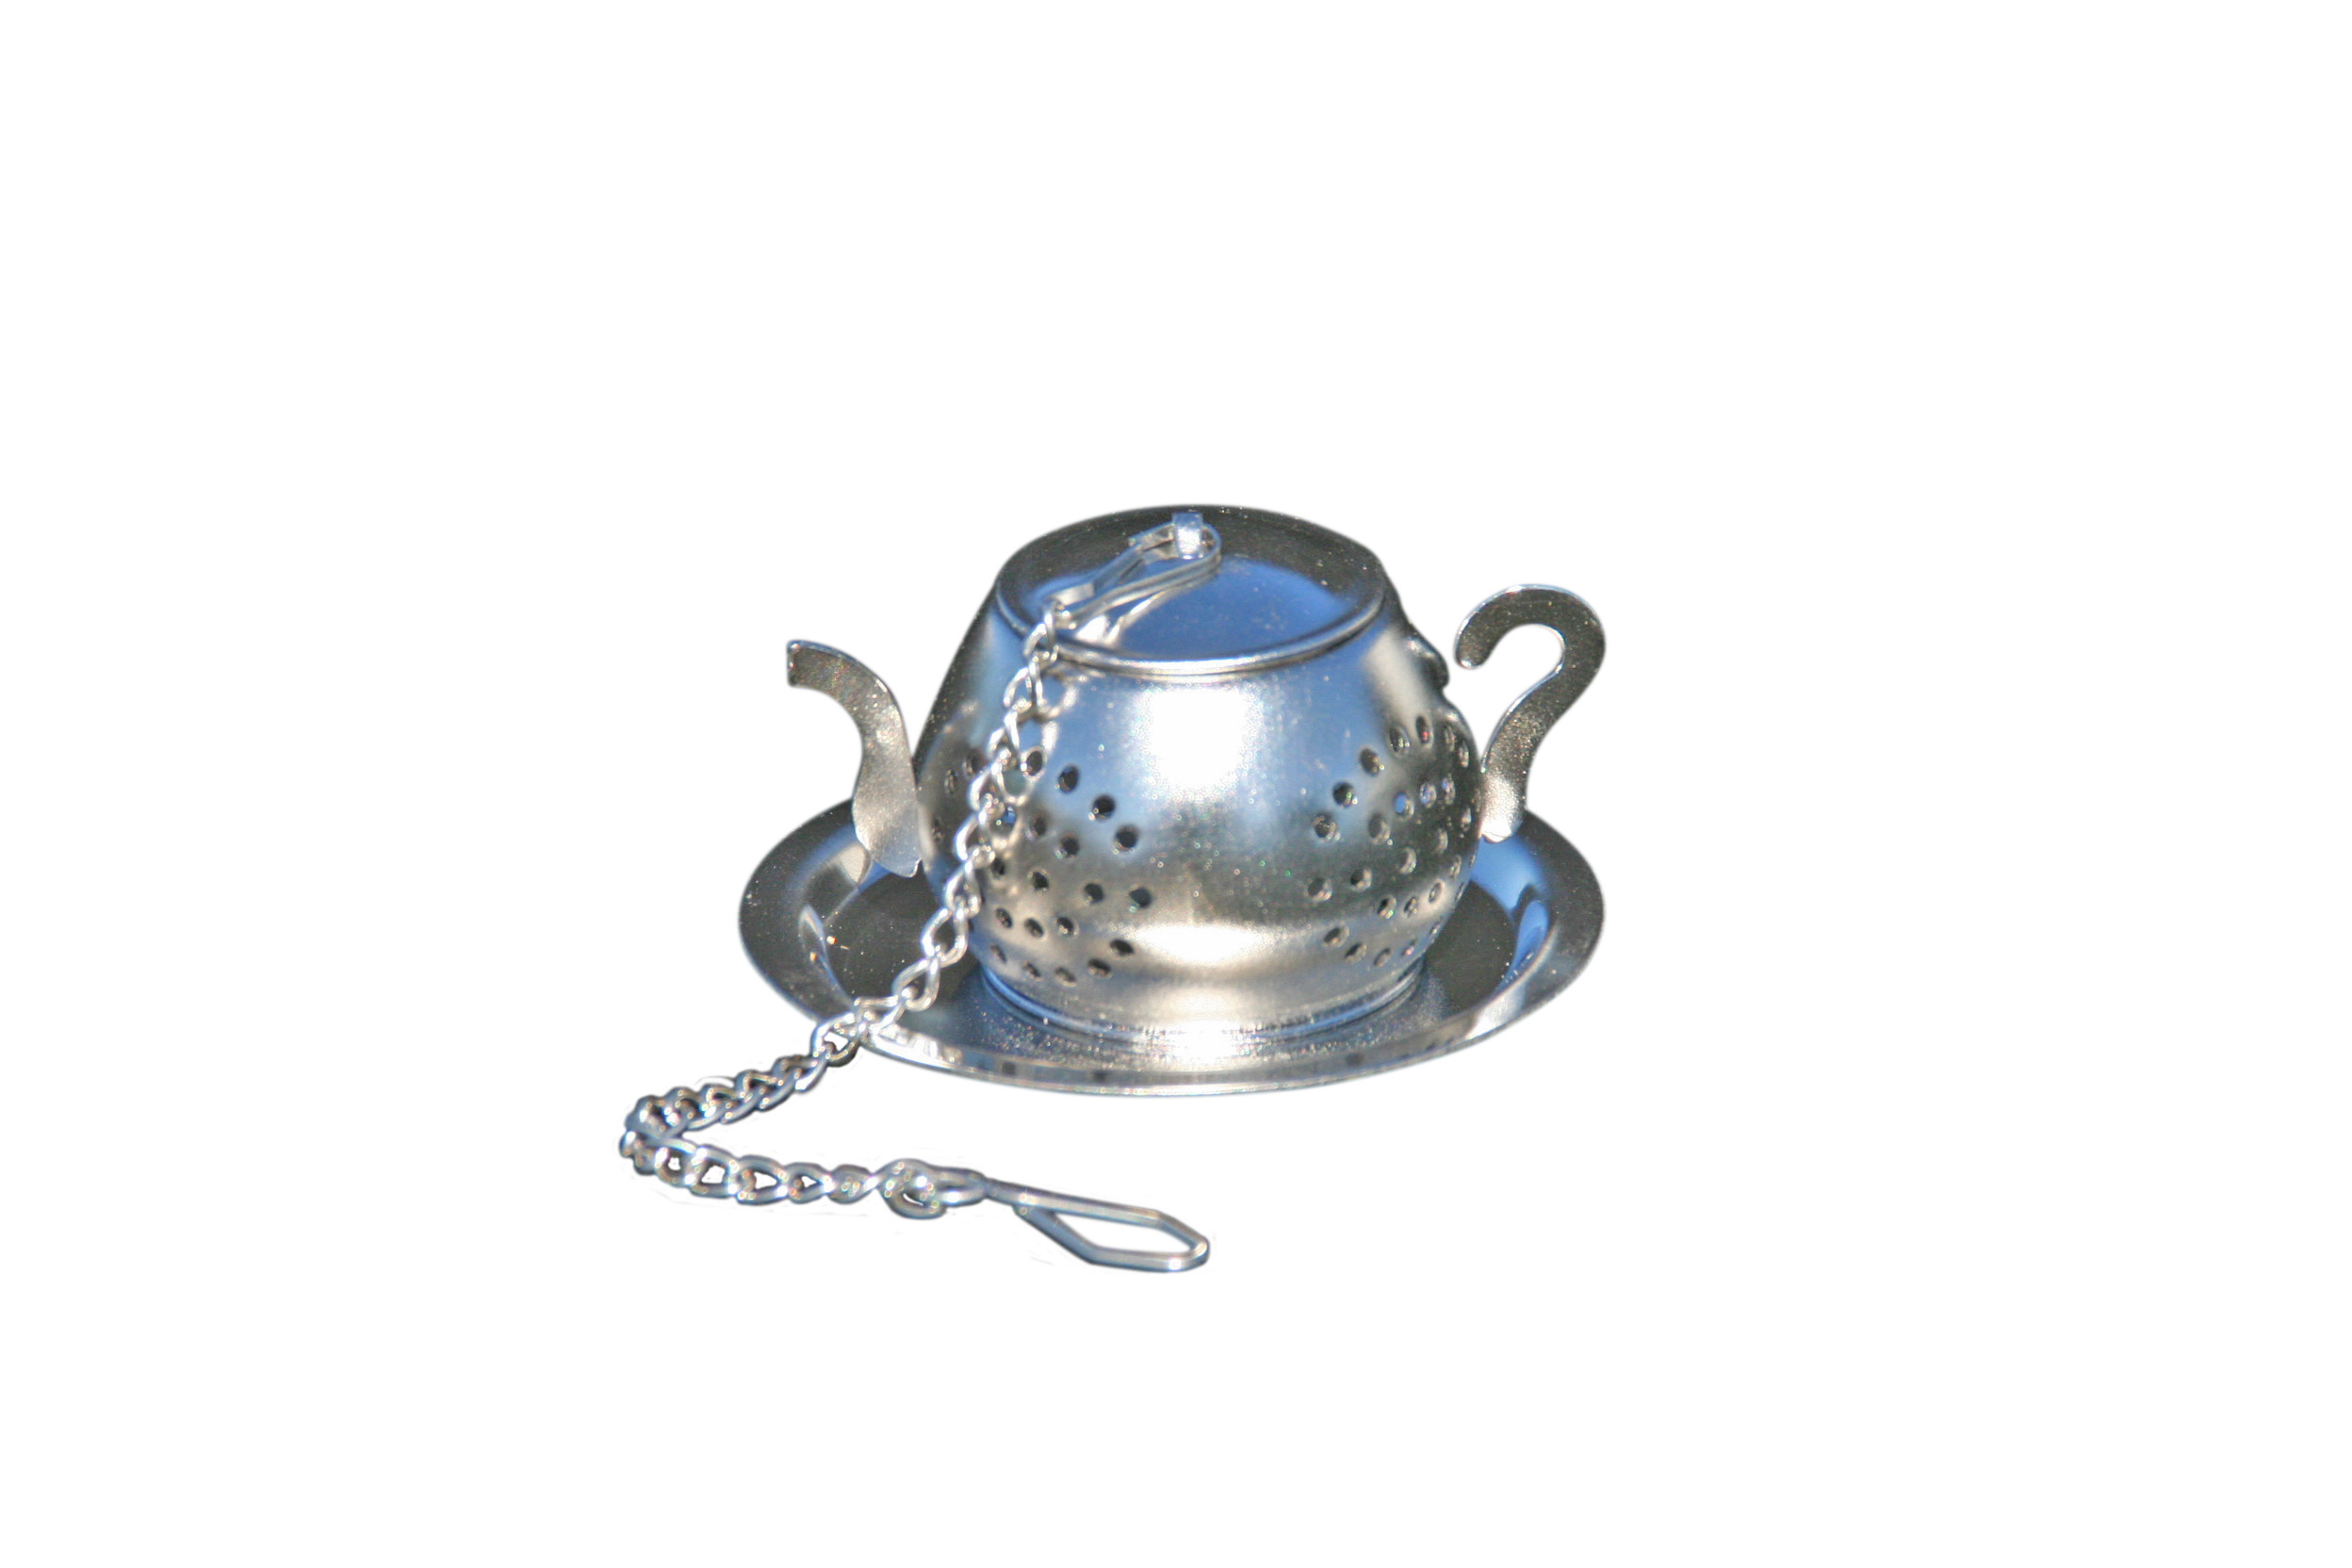 Stainless Steel Infuser Teapot